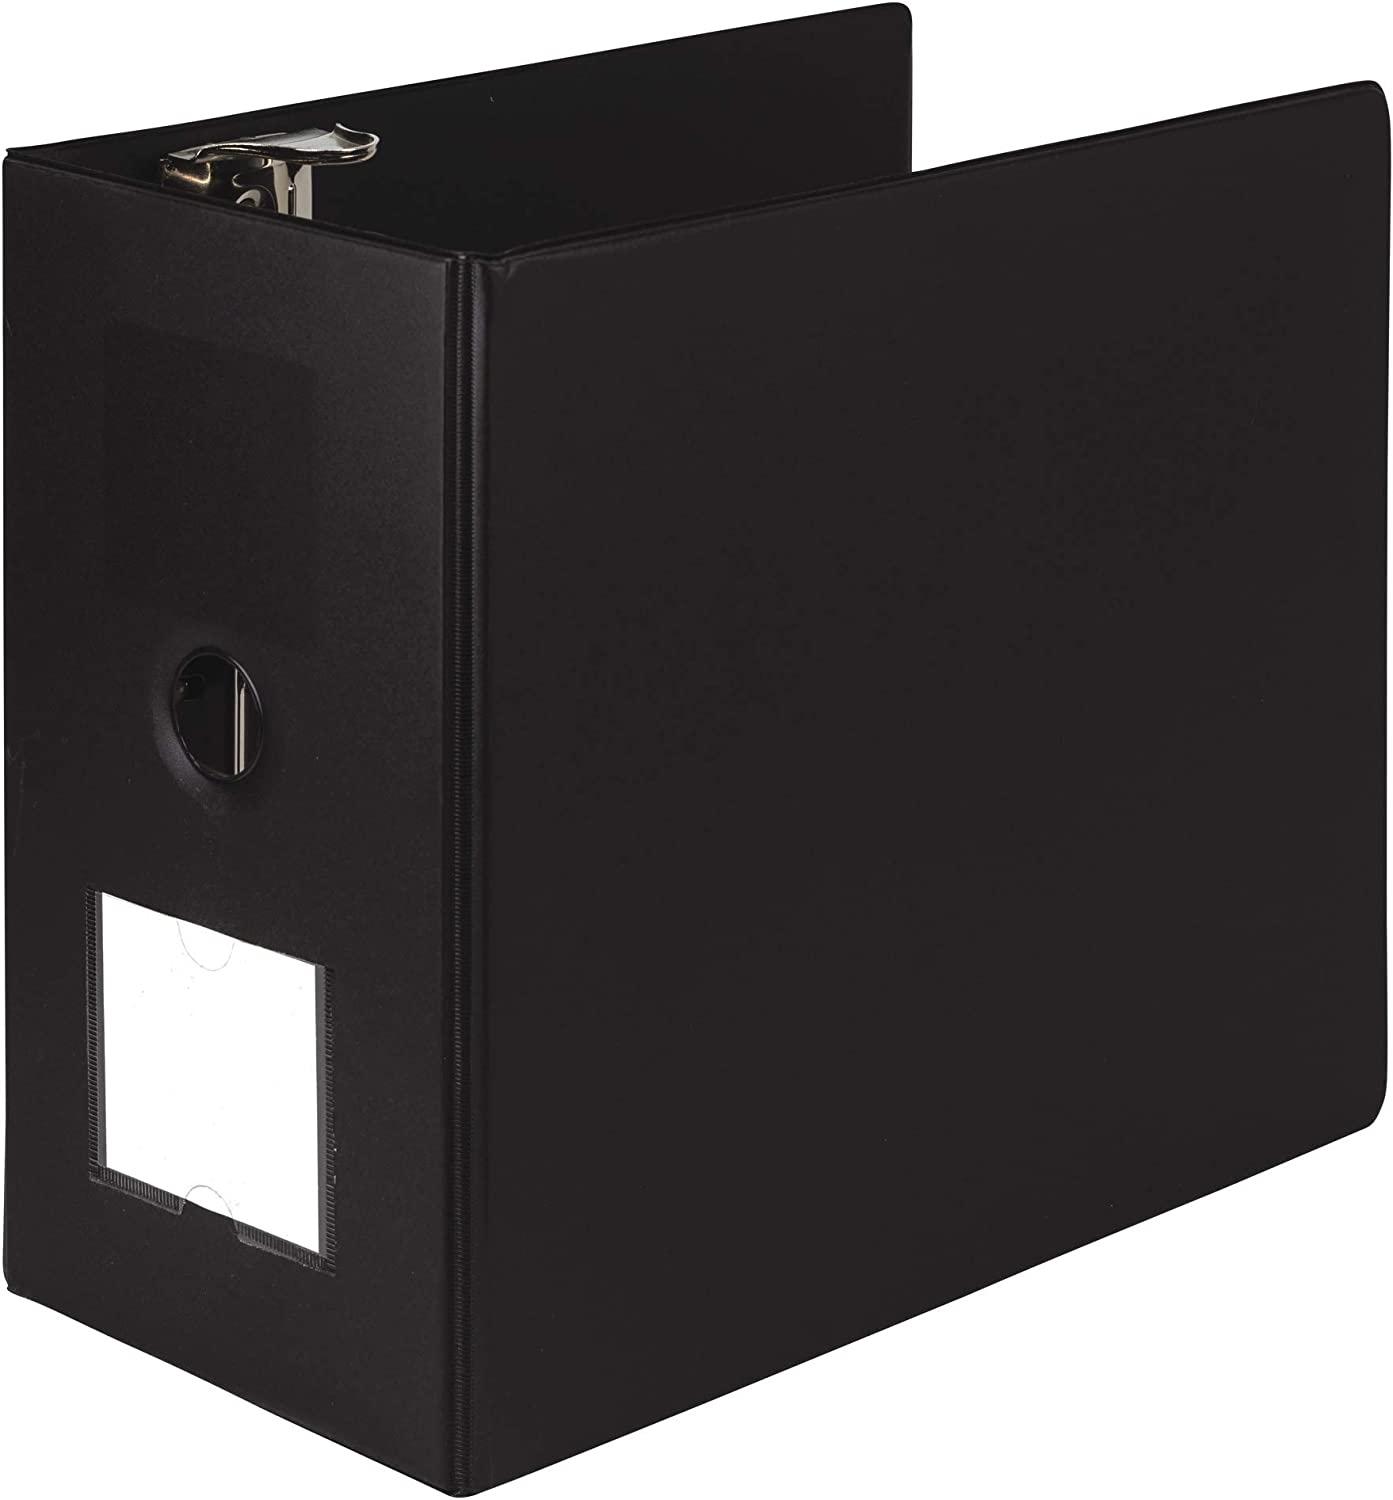 Samsill Heavyweight Reference Ring Binder, 3 Ring Binder with Label Holder for Home or Office, 6 Inch Locking D-Rings - Holds 1225 Sheet, Black